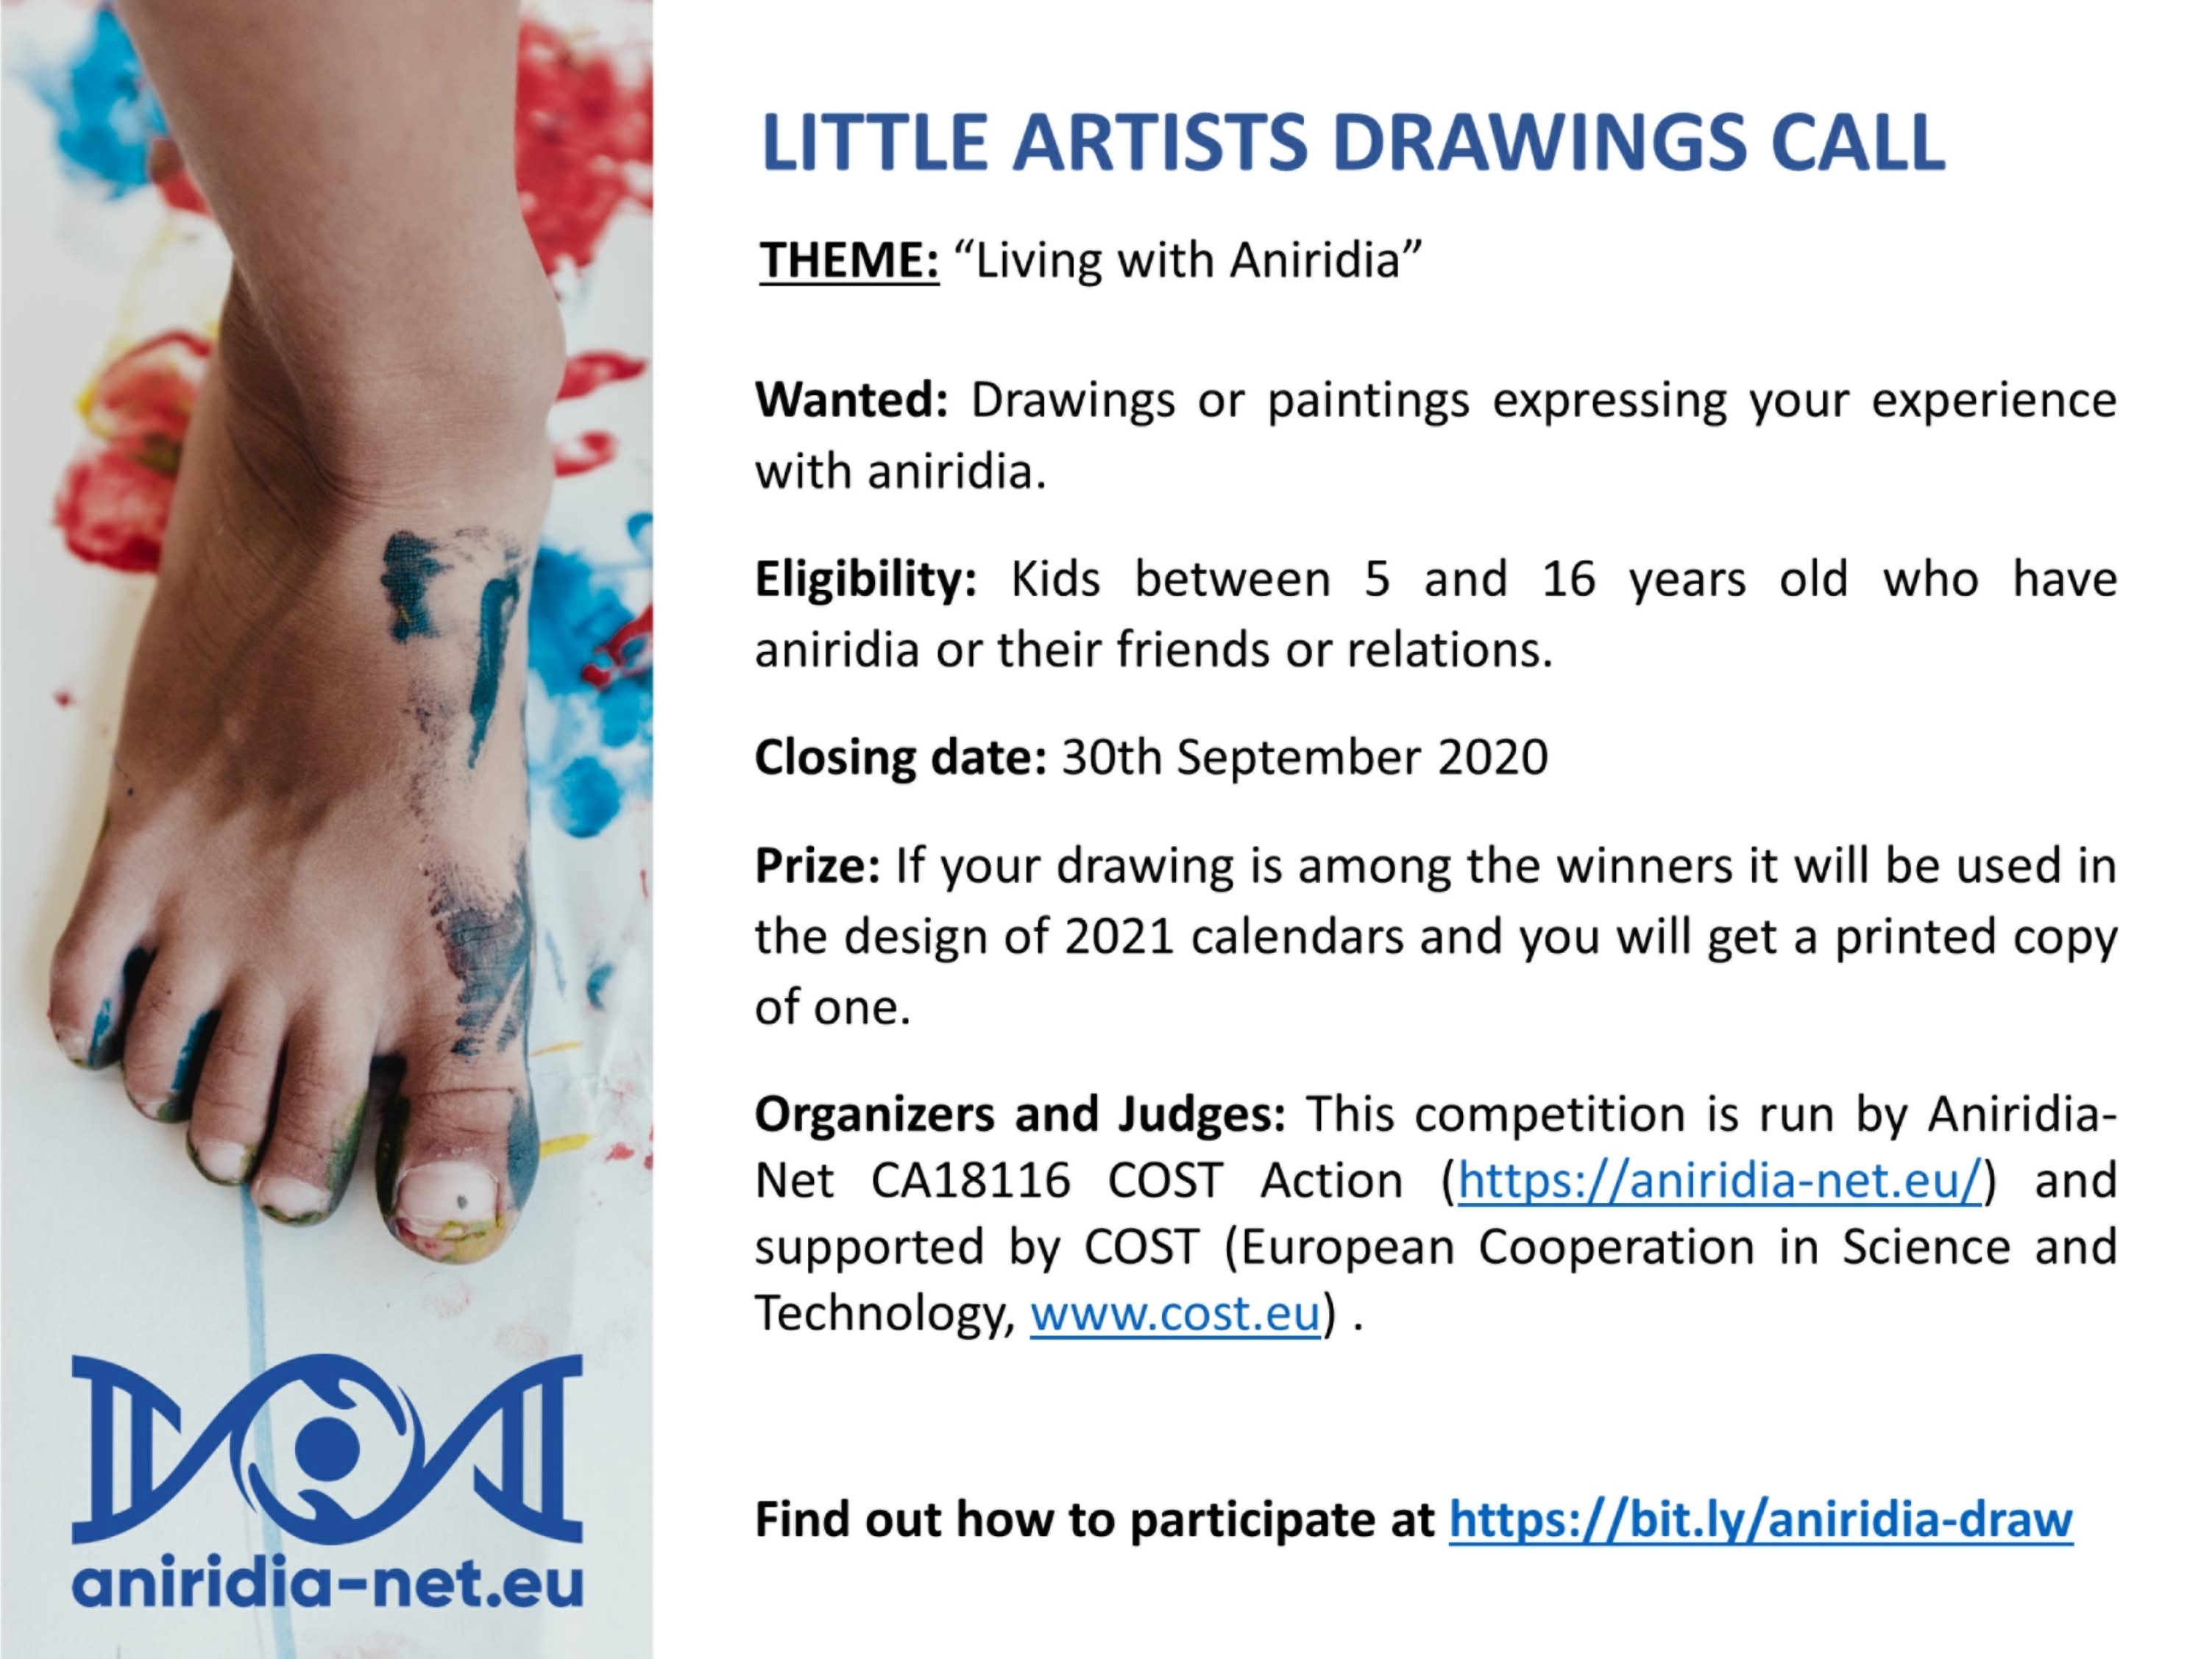 Aniridia: little artists drawings call